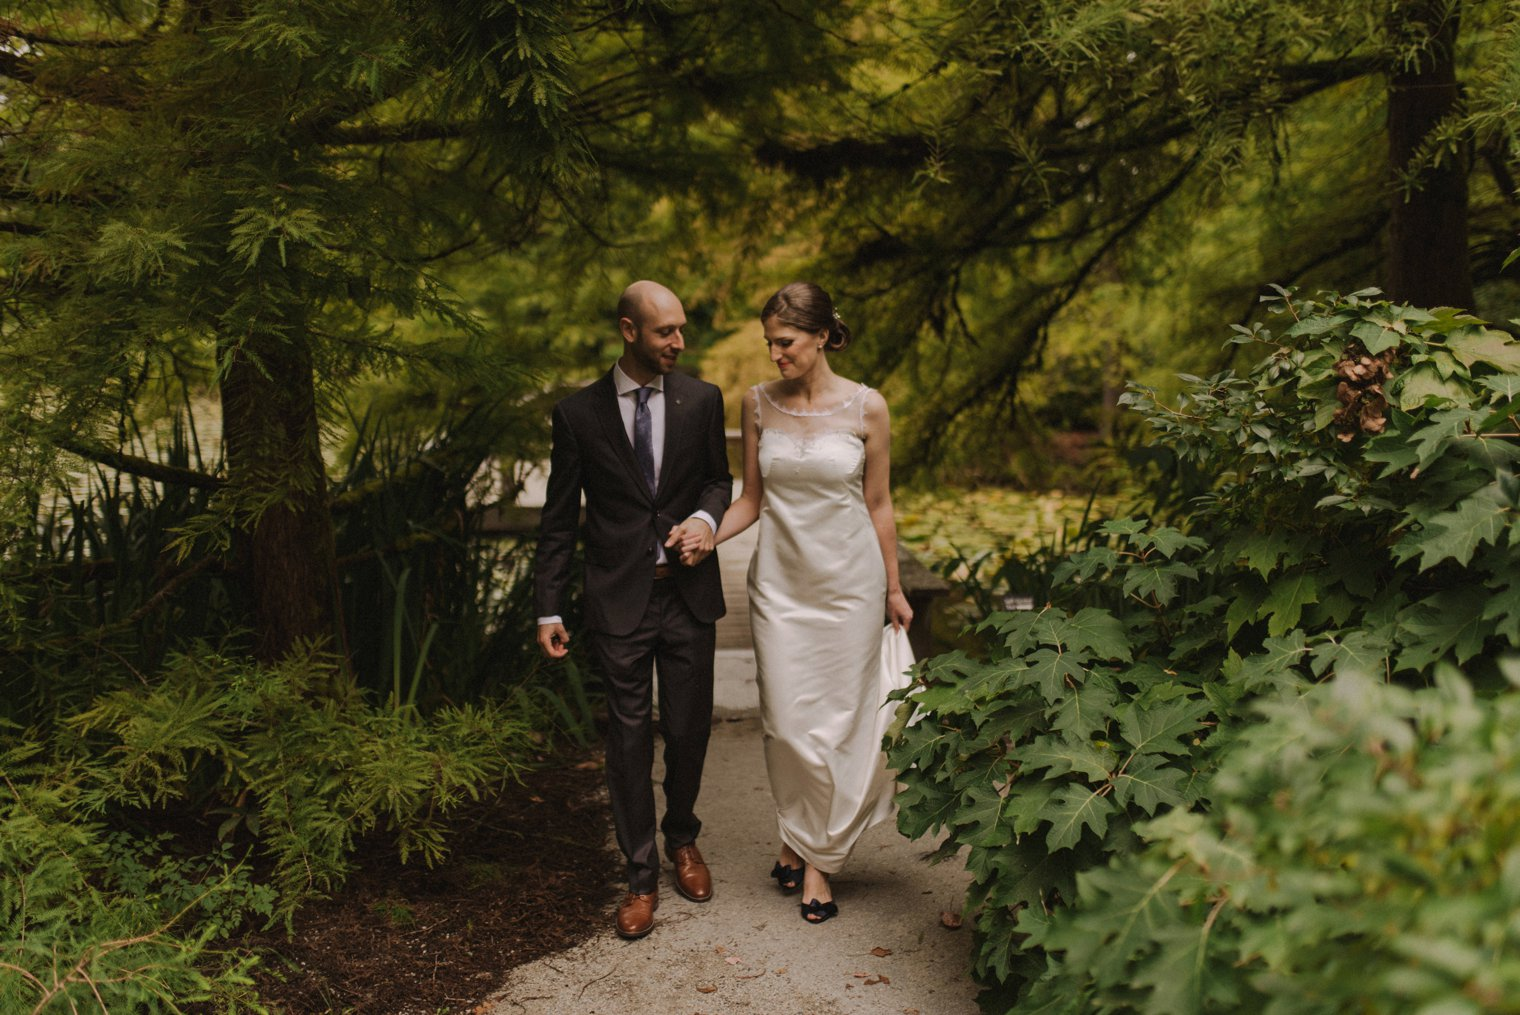 fall wedding photo at vandusen botanical garden in vancouver